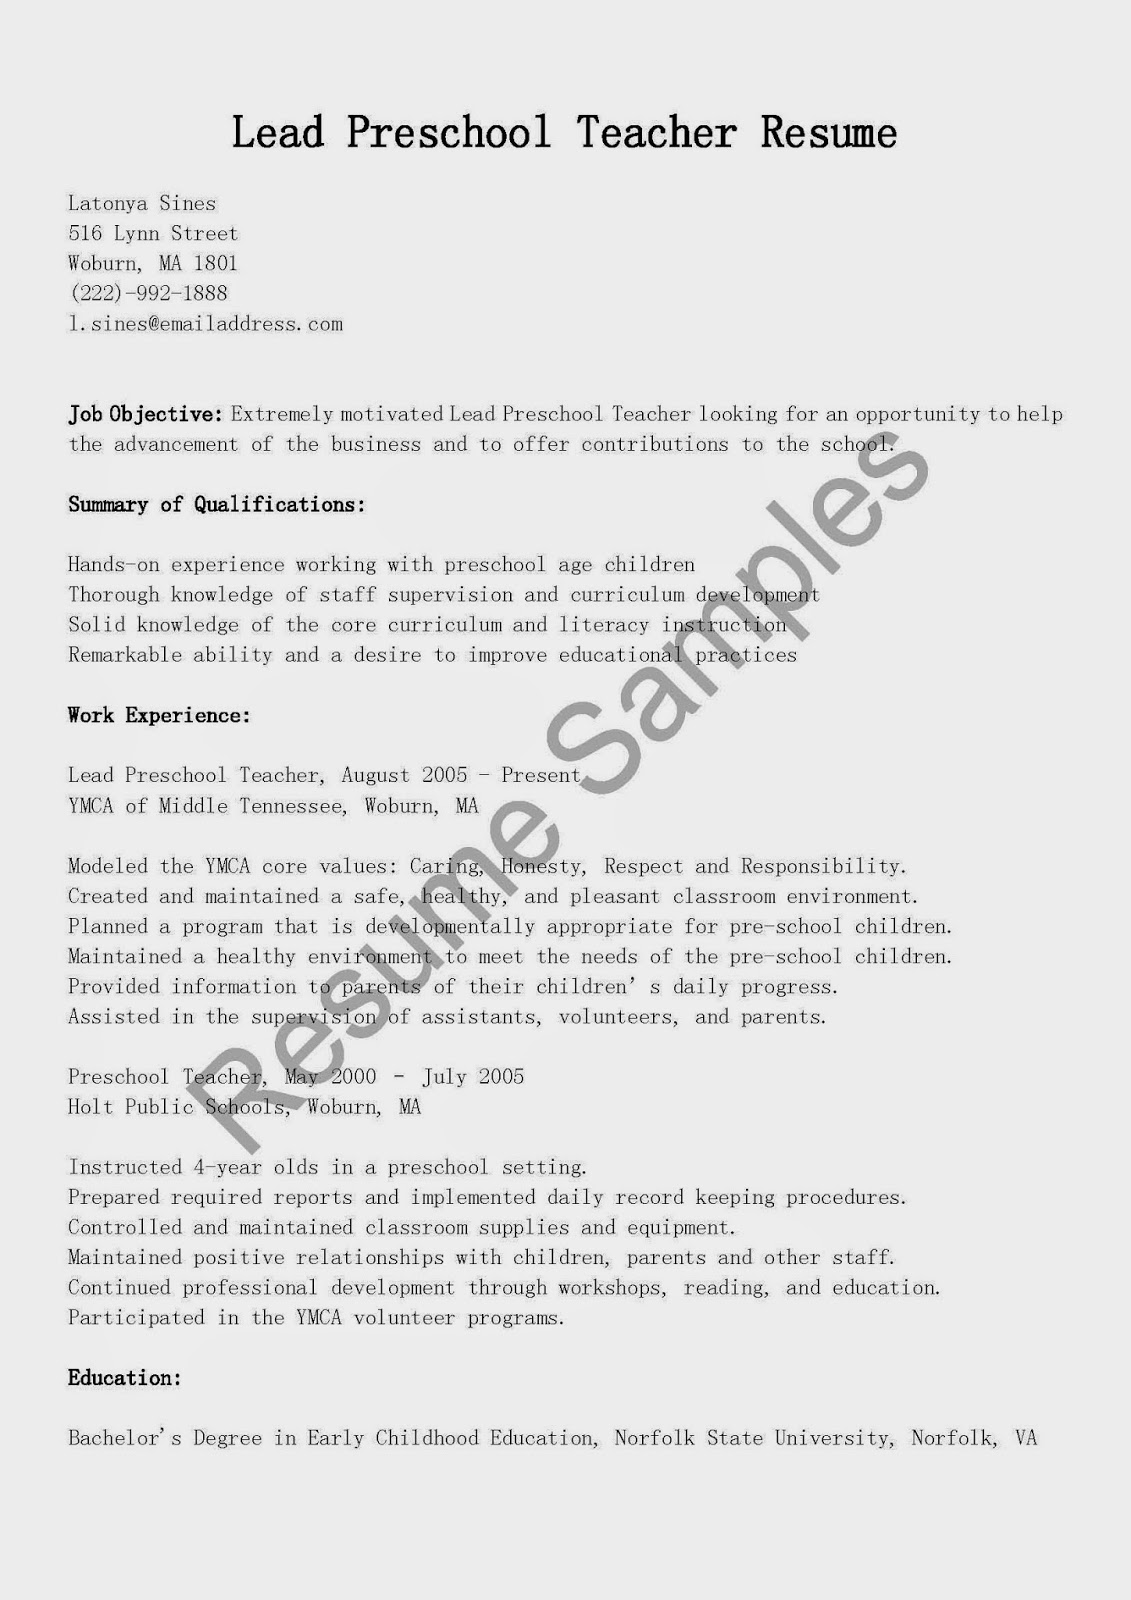 Resumes For Educators Breakupus Engaging Outstanding Resume Designs You  Wish You Thought Of Hongkiat With Lovely  Elementary Teacher Resume Objective